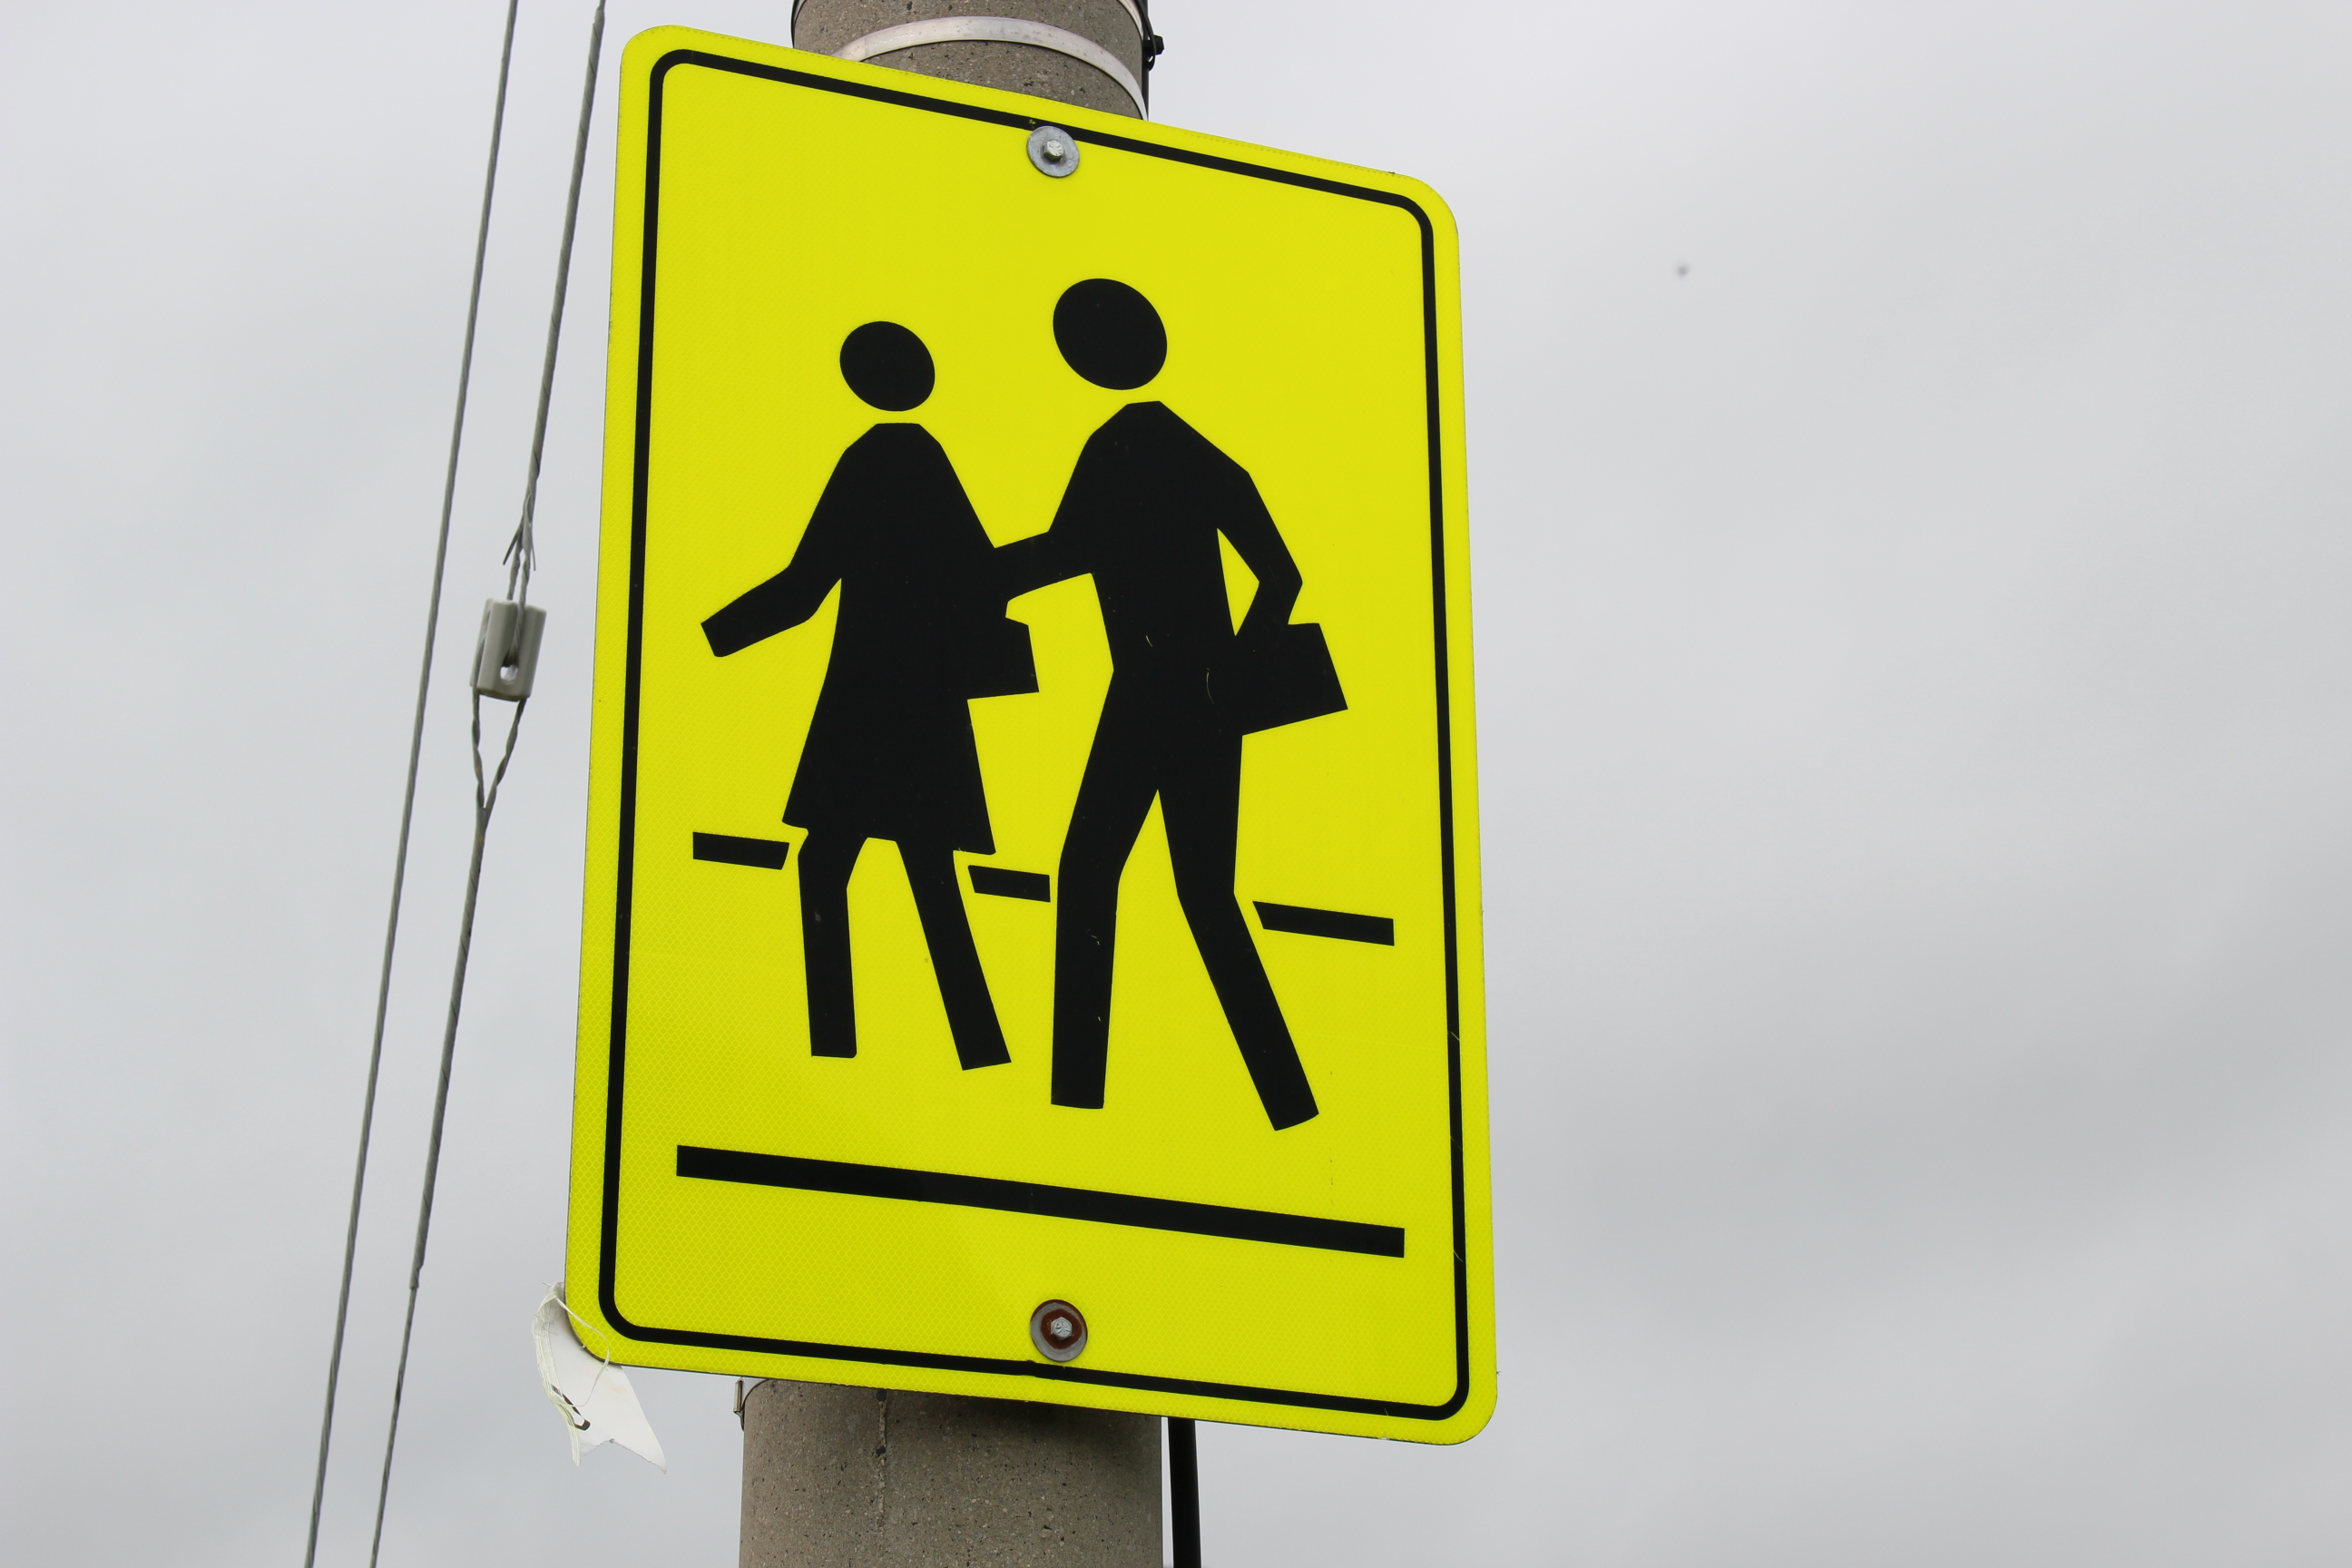 A school crossing sign. (Photo by Adelle Loiselle.)